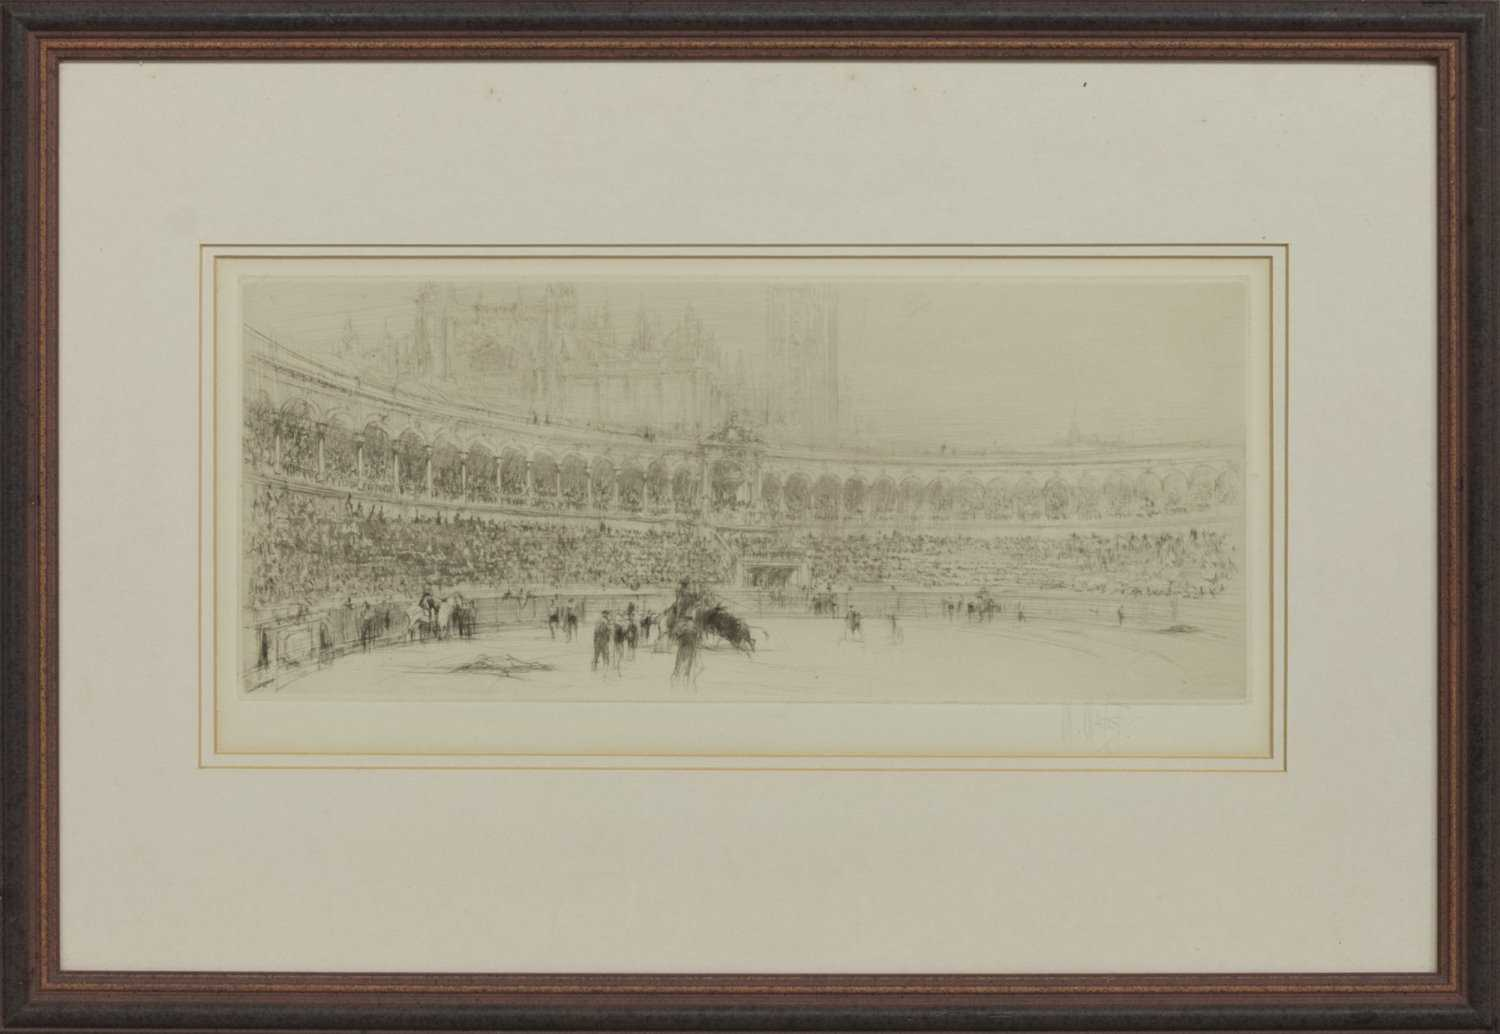 Lot 16 - BULLFIGHT, AN ETCHING BY WILLIAM WALCOT